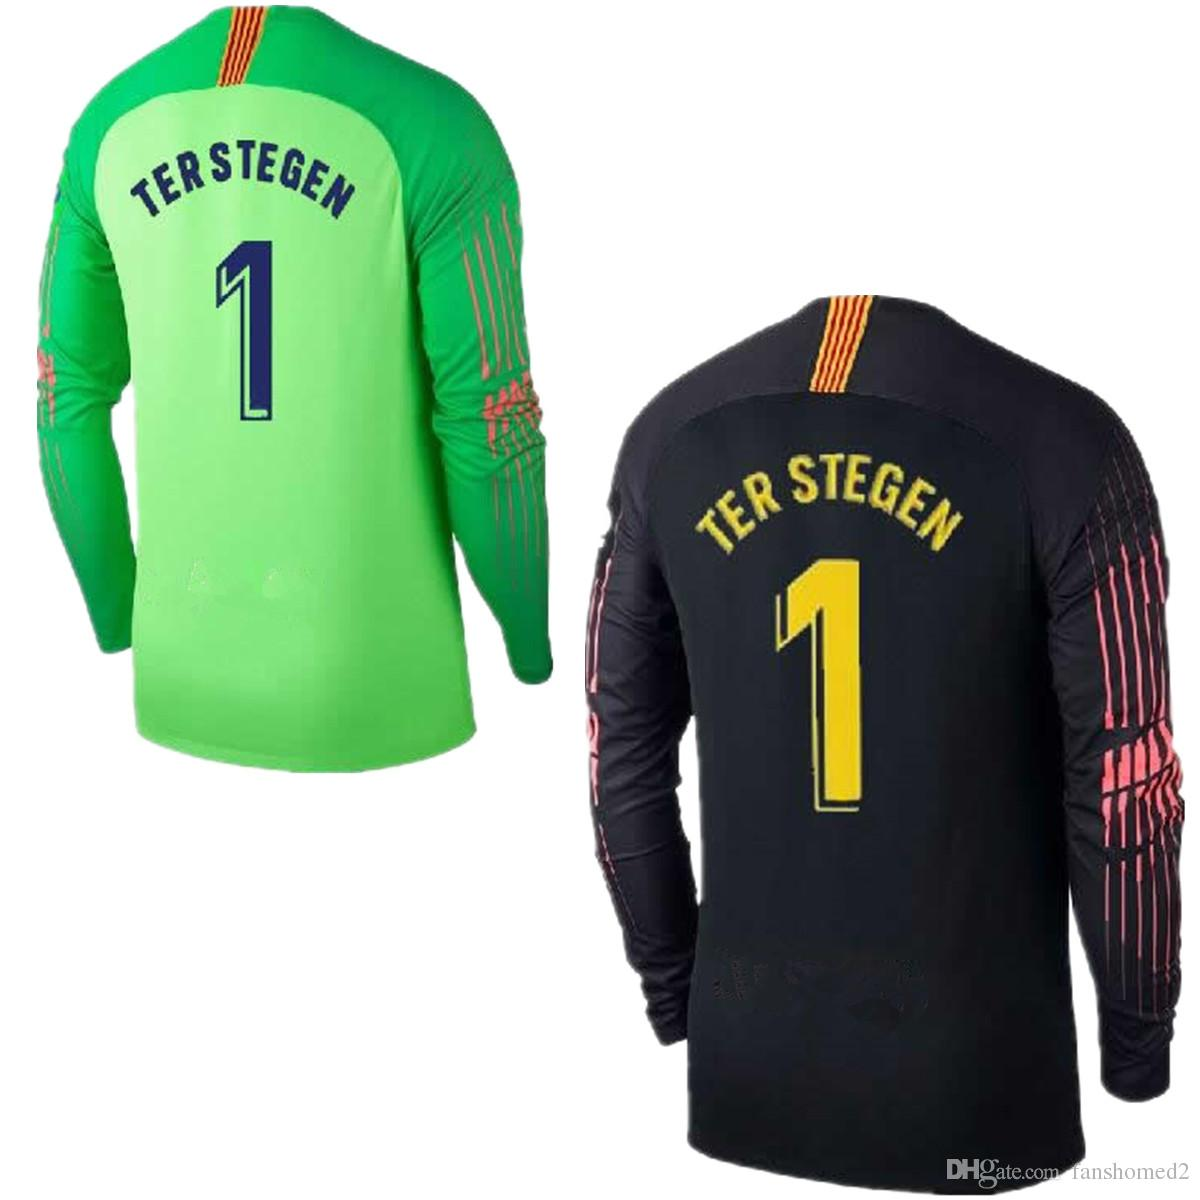 e0e608393 2019 2018 2019 Adults Long Sleeve Ter Stegen Goalkeeper Jersey Soccer  Jerseys  1 Marc Andre Ter Stegen Goalie Jersey Black Long Football Shirts  From ...